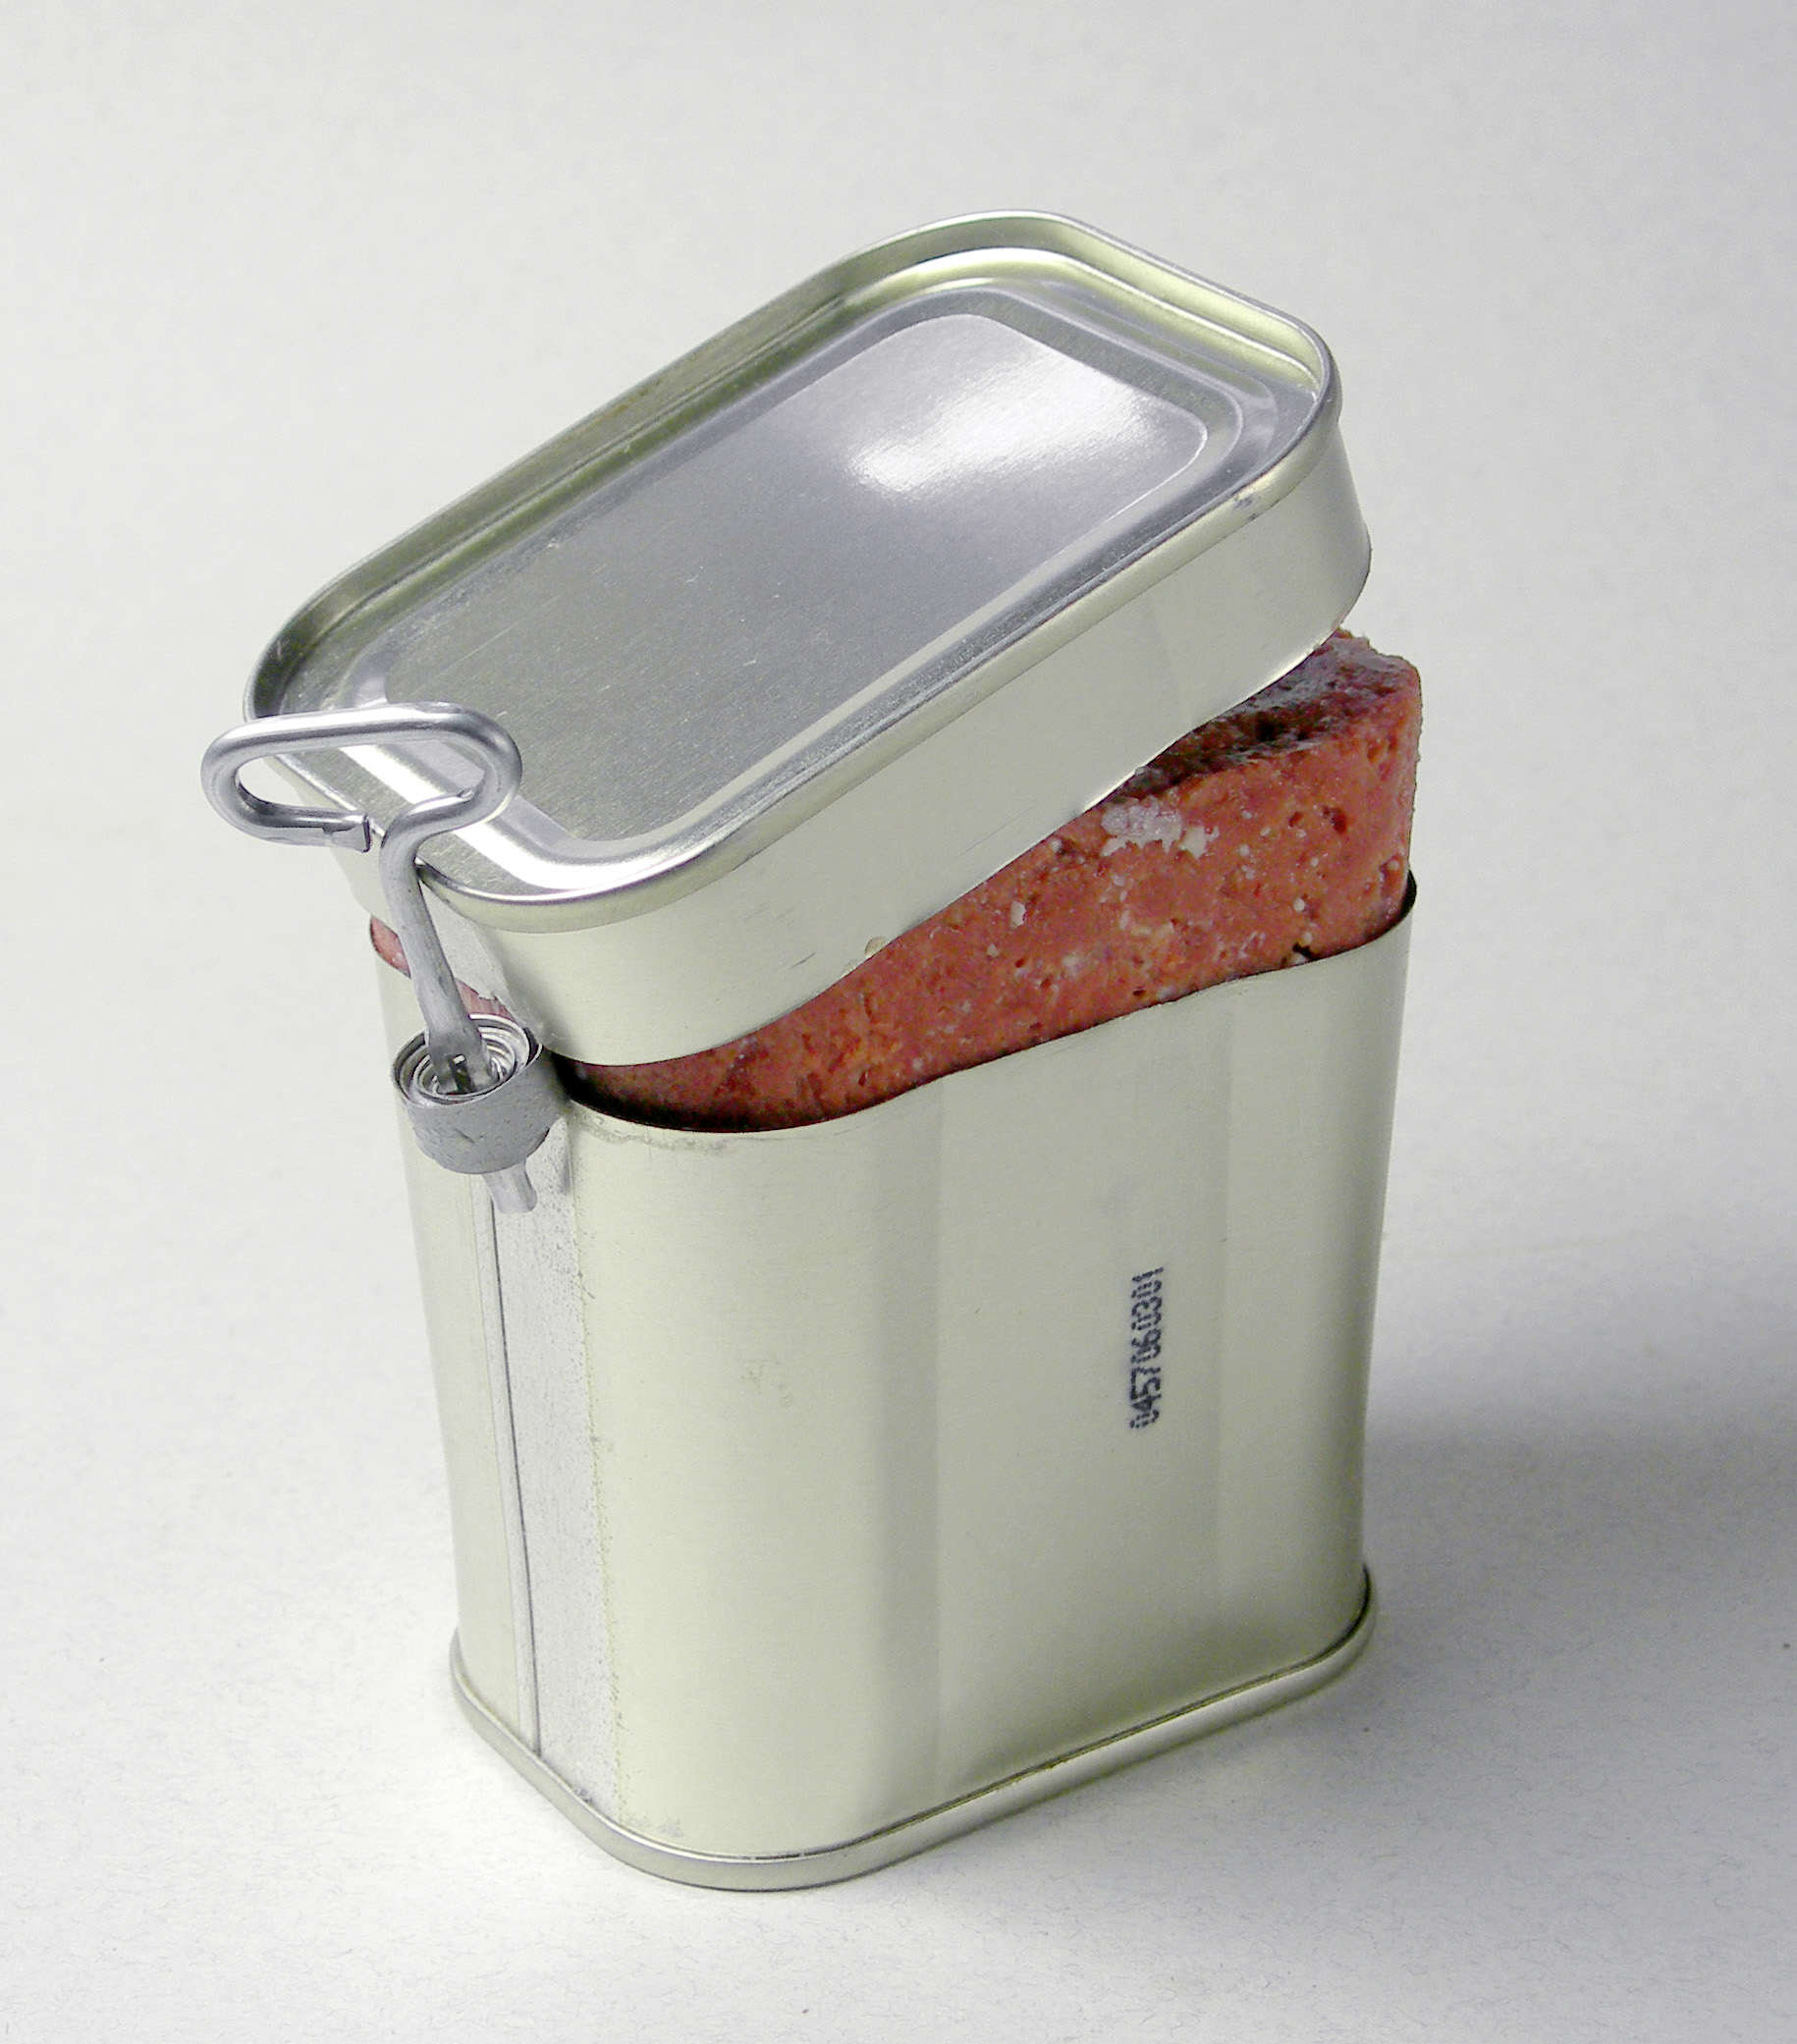 cornedbeef1 Rumours Emerge Of Human Flesh Being Sold As Supermarket Corned Beef